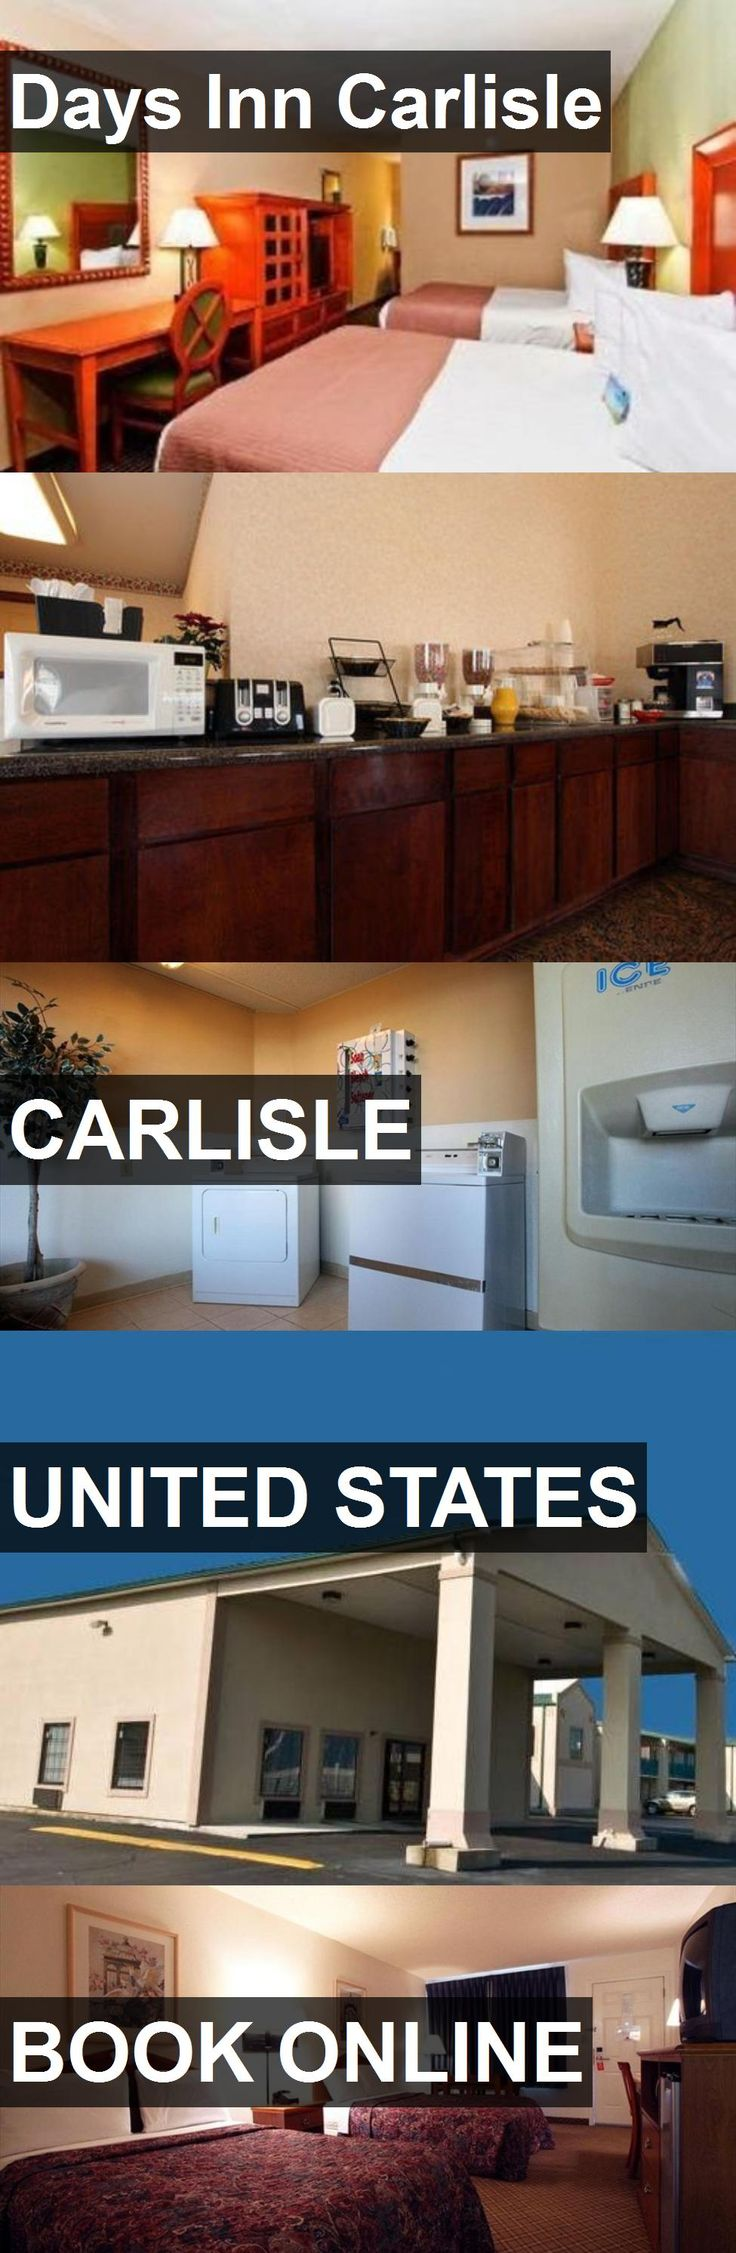 Hotel Days Inn Carlisle in Carlisle, United States. For more information, photos, reviews and best prices please follow the link. #UnitedStates #Carlisle #hotel #travel #vacation